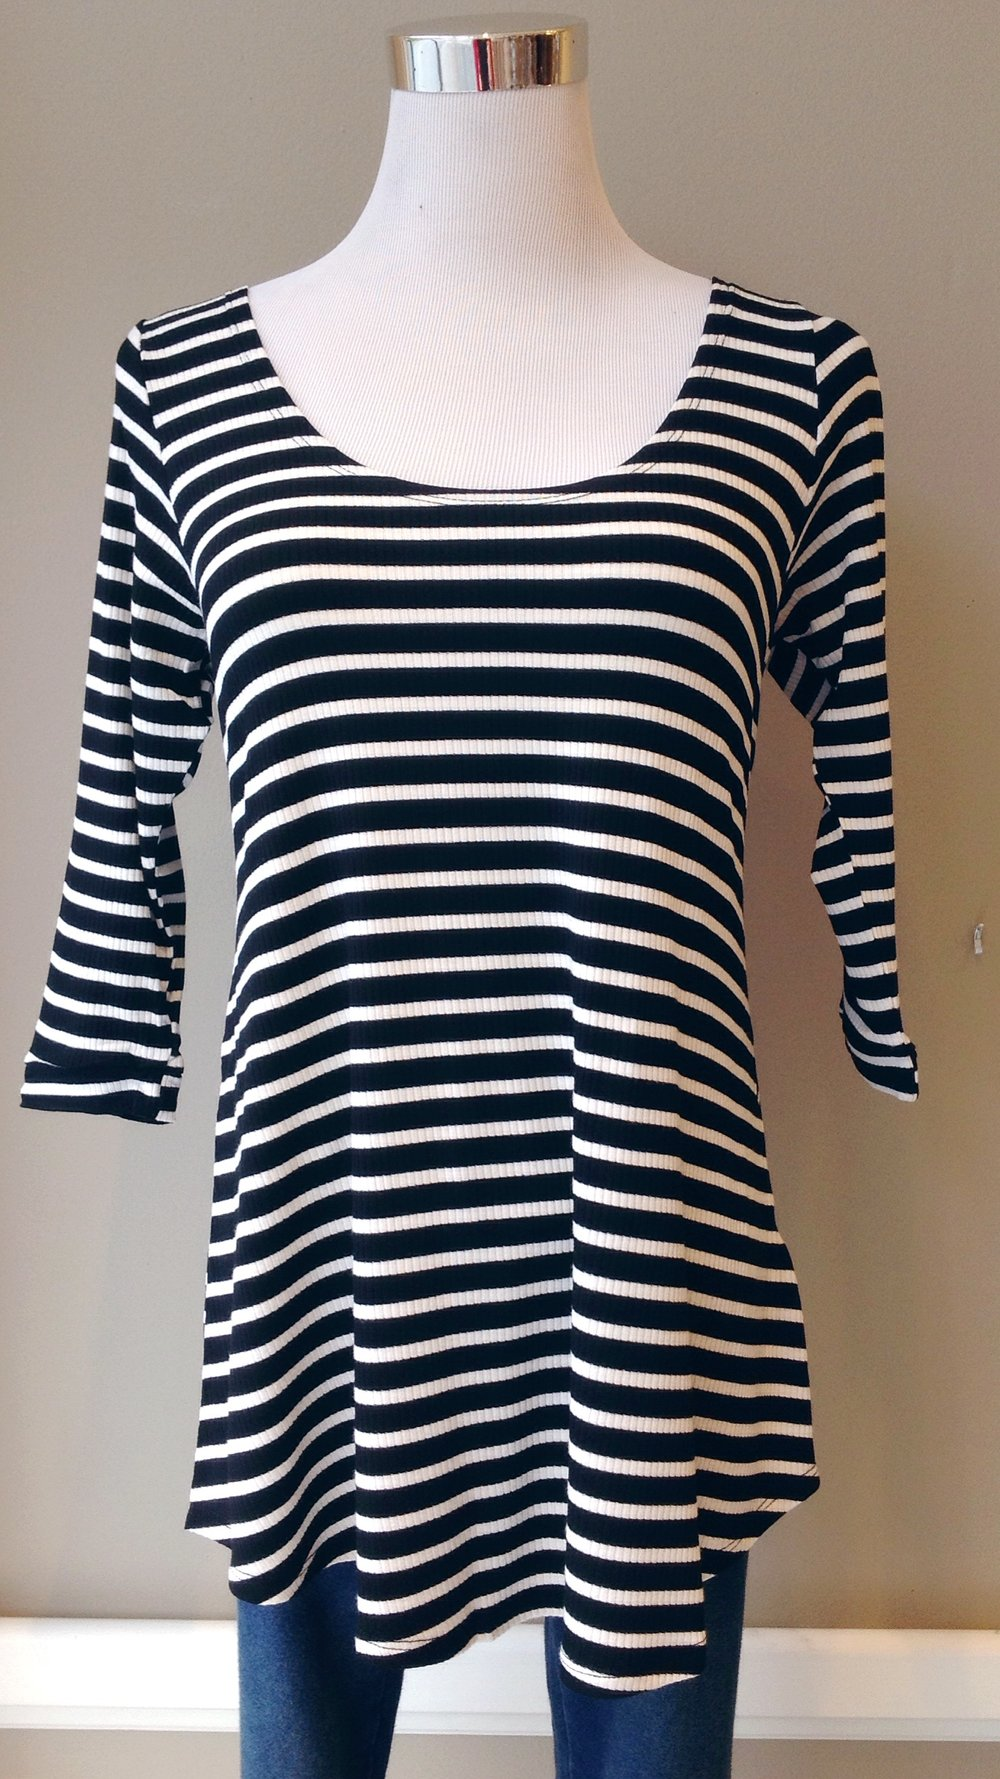 Rib knit top with 3/4 sleeves in black and white stripe, $26